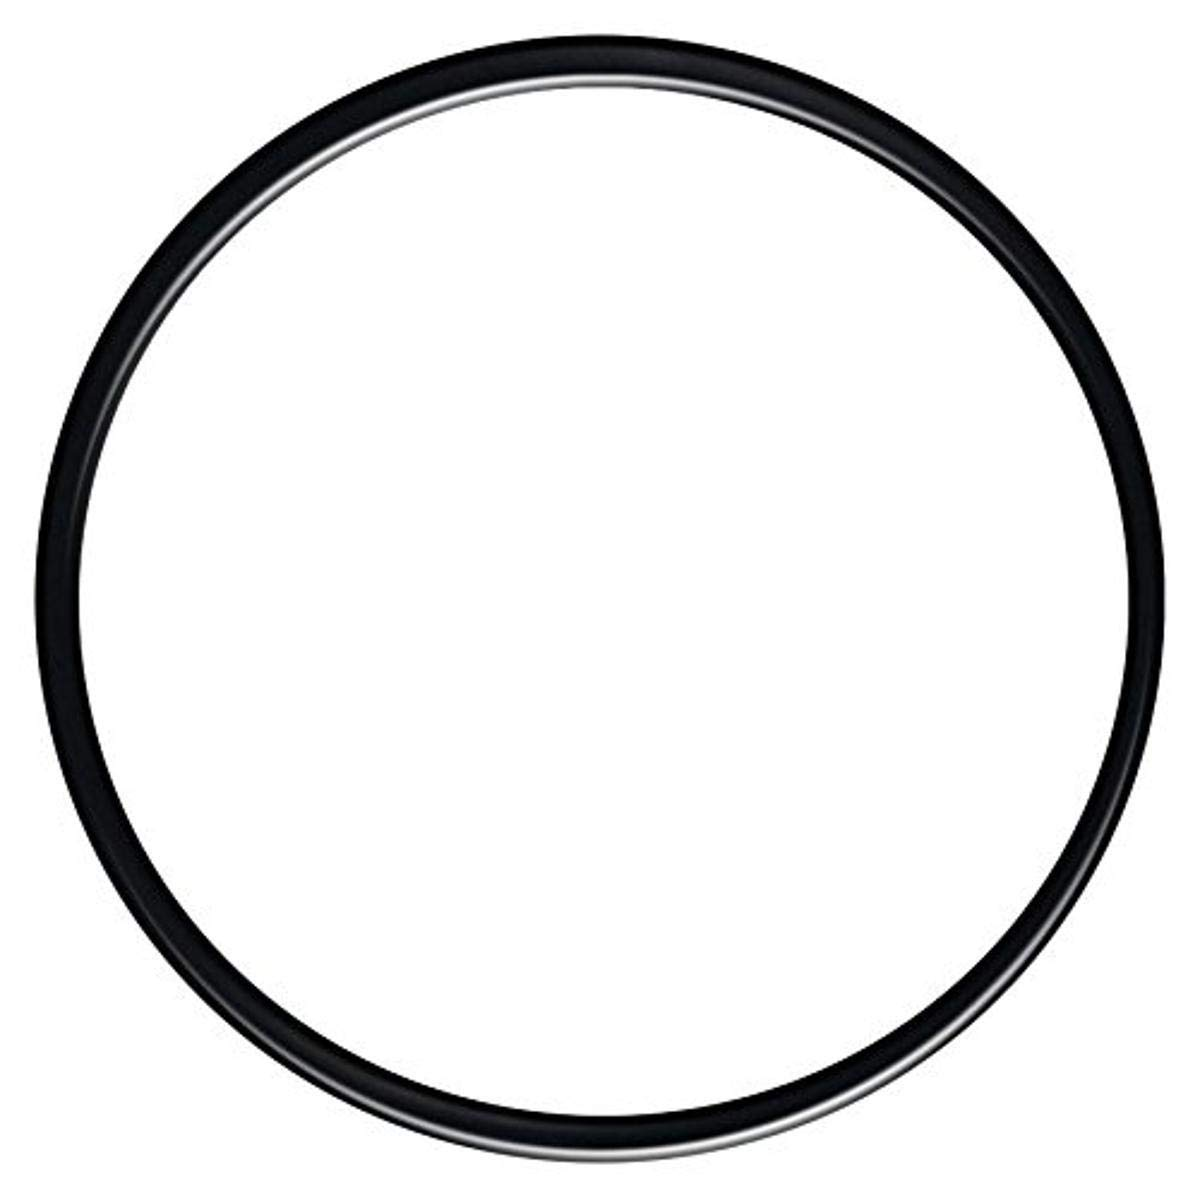 ORTFE223 Number-223 Standard Teflon O-Ring 1-7//8 OD 1-5//8 ID 1-7//8 OD Sur-Seal Sterling Seal and Supply 1-5//8 ID STCC Polytetrafluoro-Ethylene Outstanding Weather Resistance